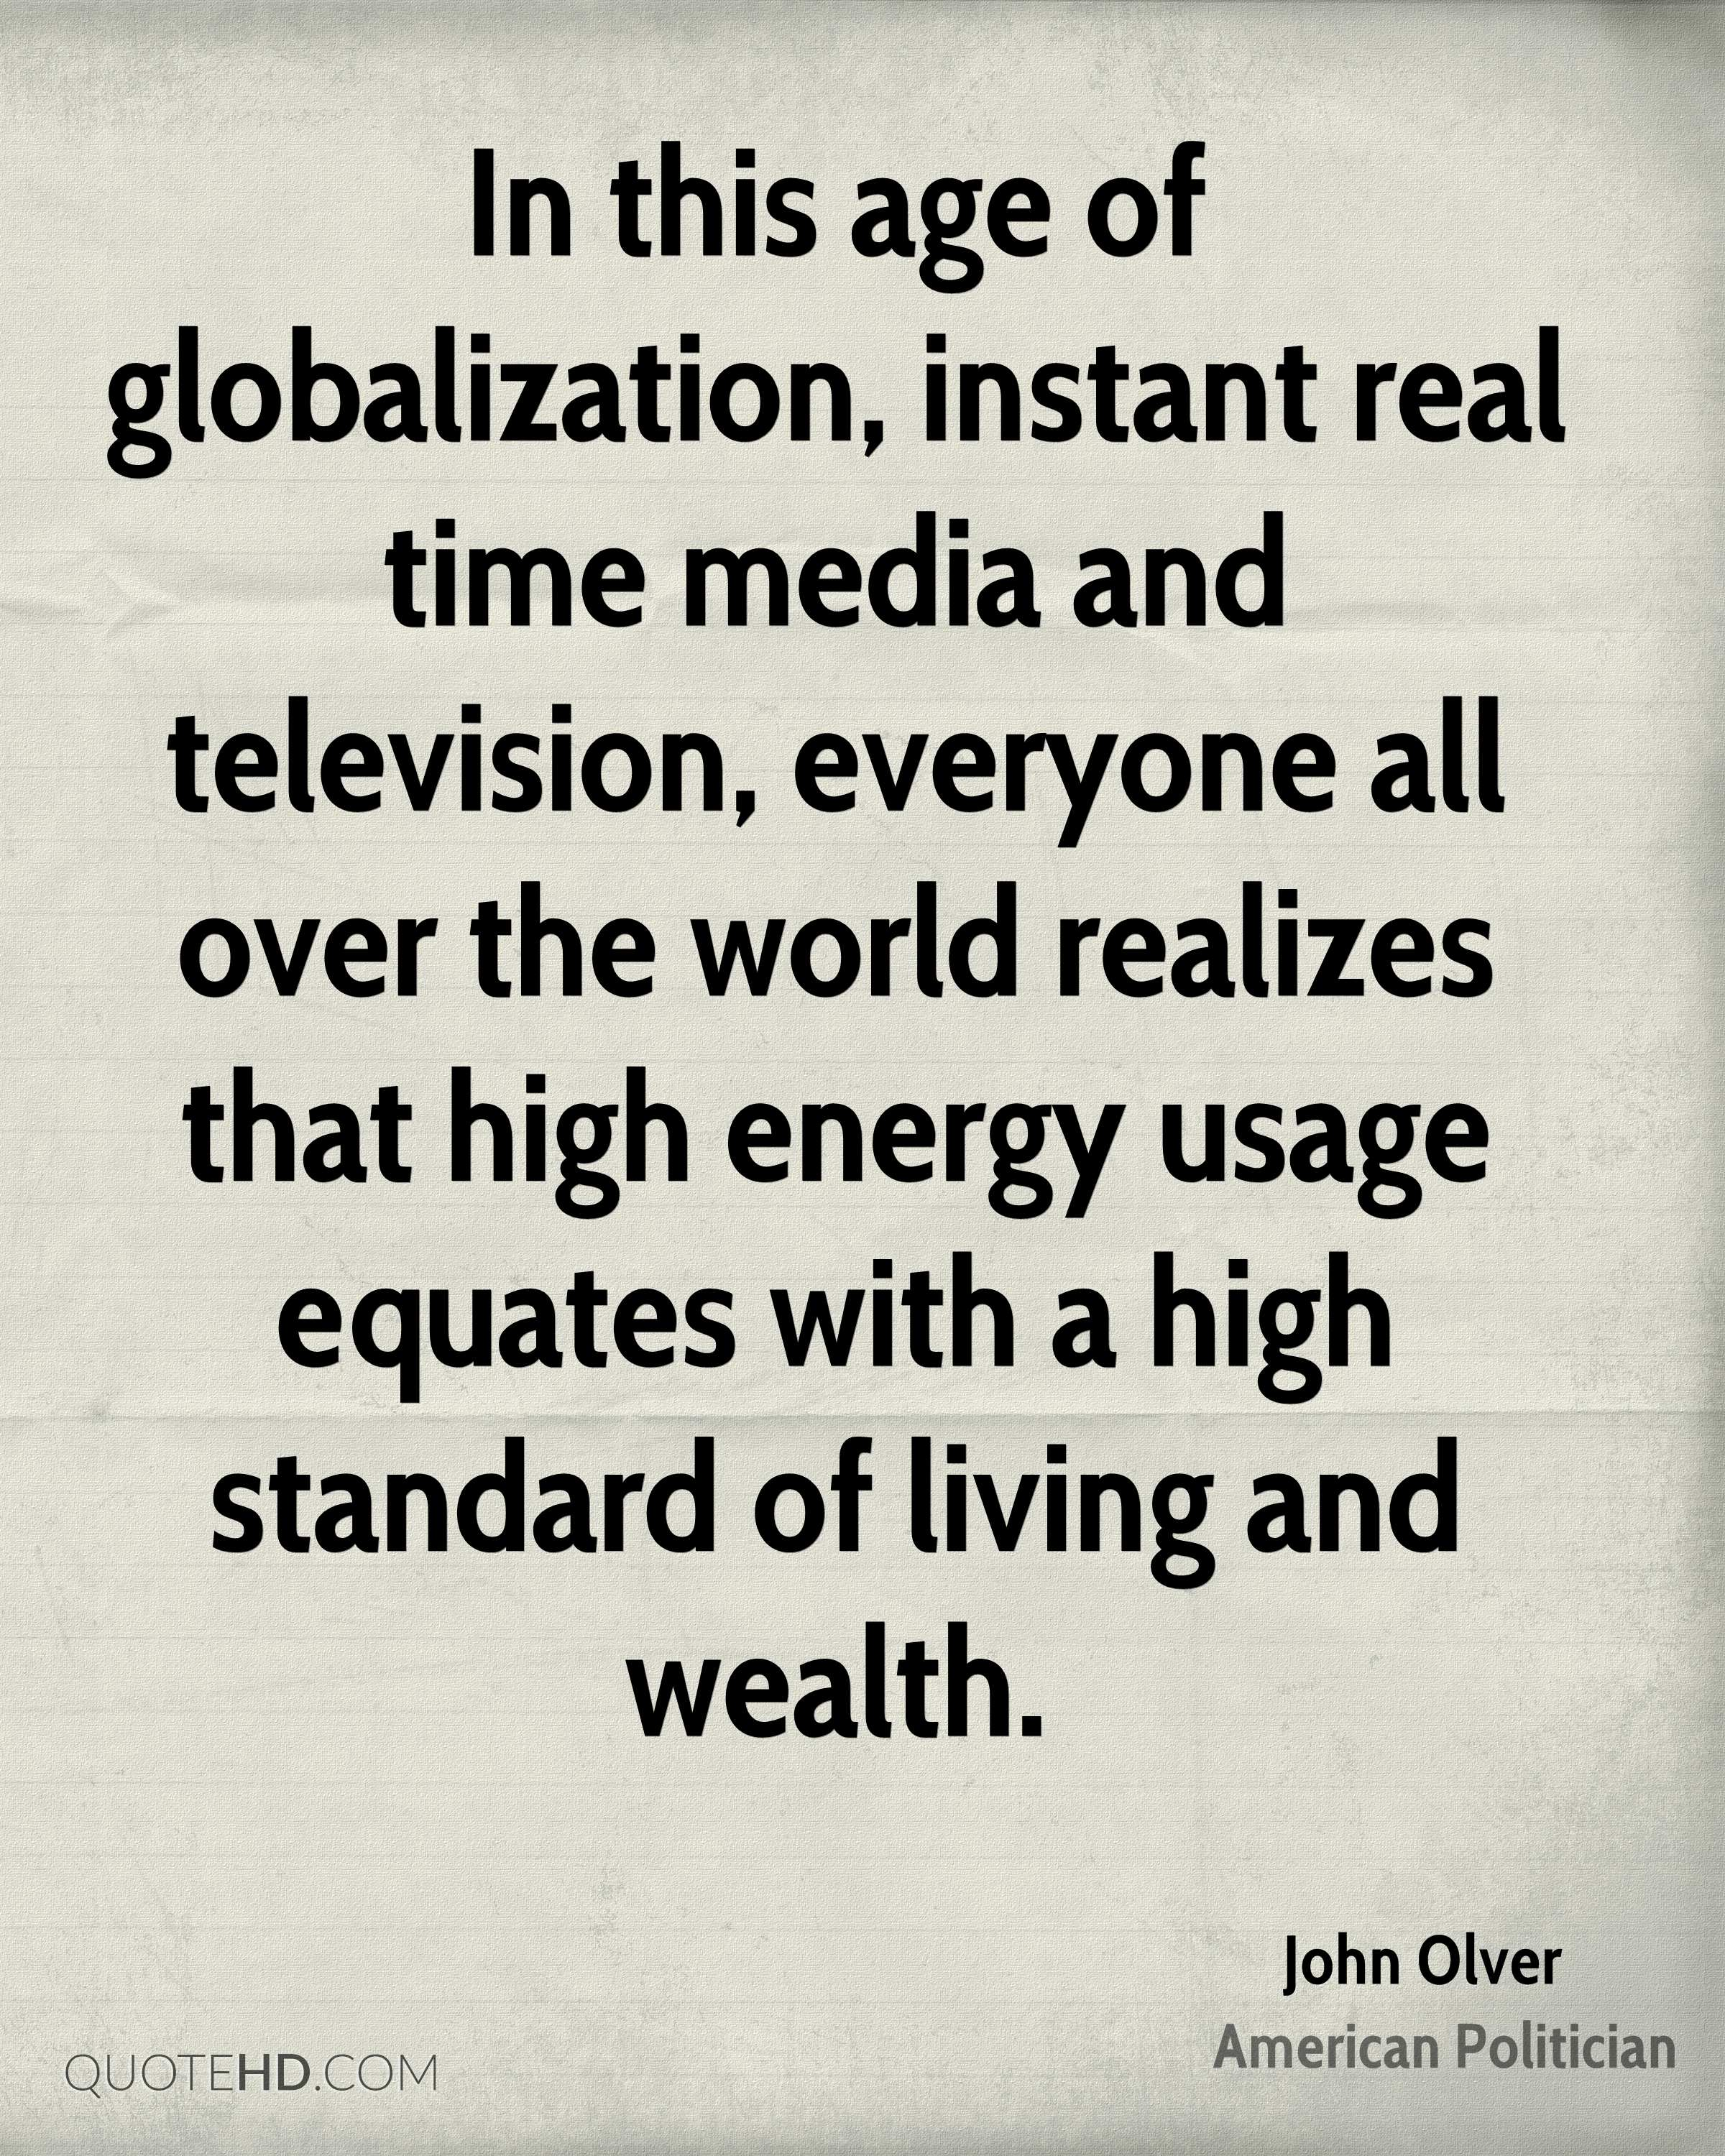 In this age of globalization, instant real time media and television, everyone all over the world realizes that high energy usage equates with a high standard of living and wealth.